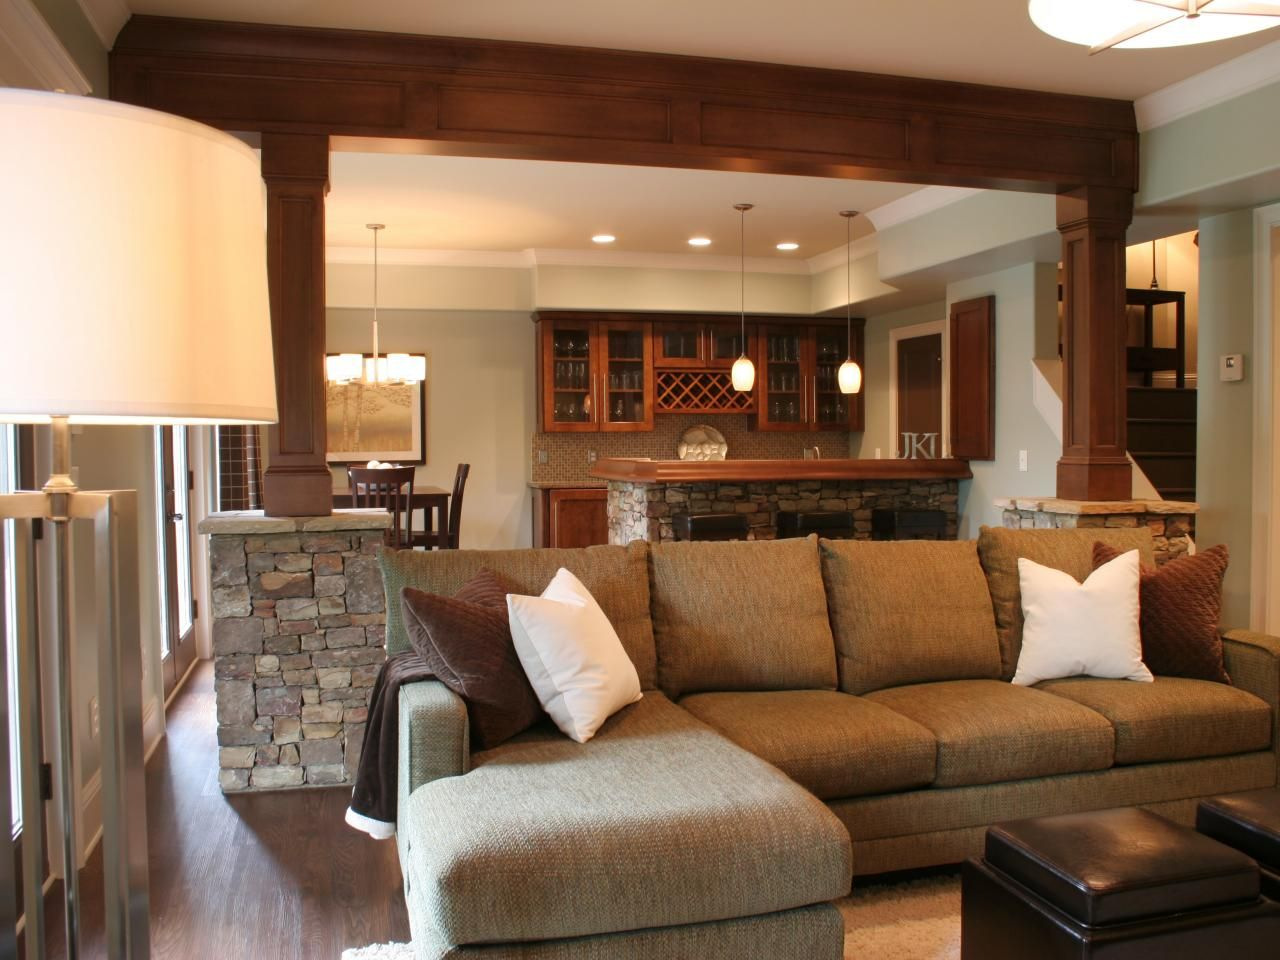 Basement design ideas basements hgtv and beams for Basement bedroom ideas